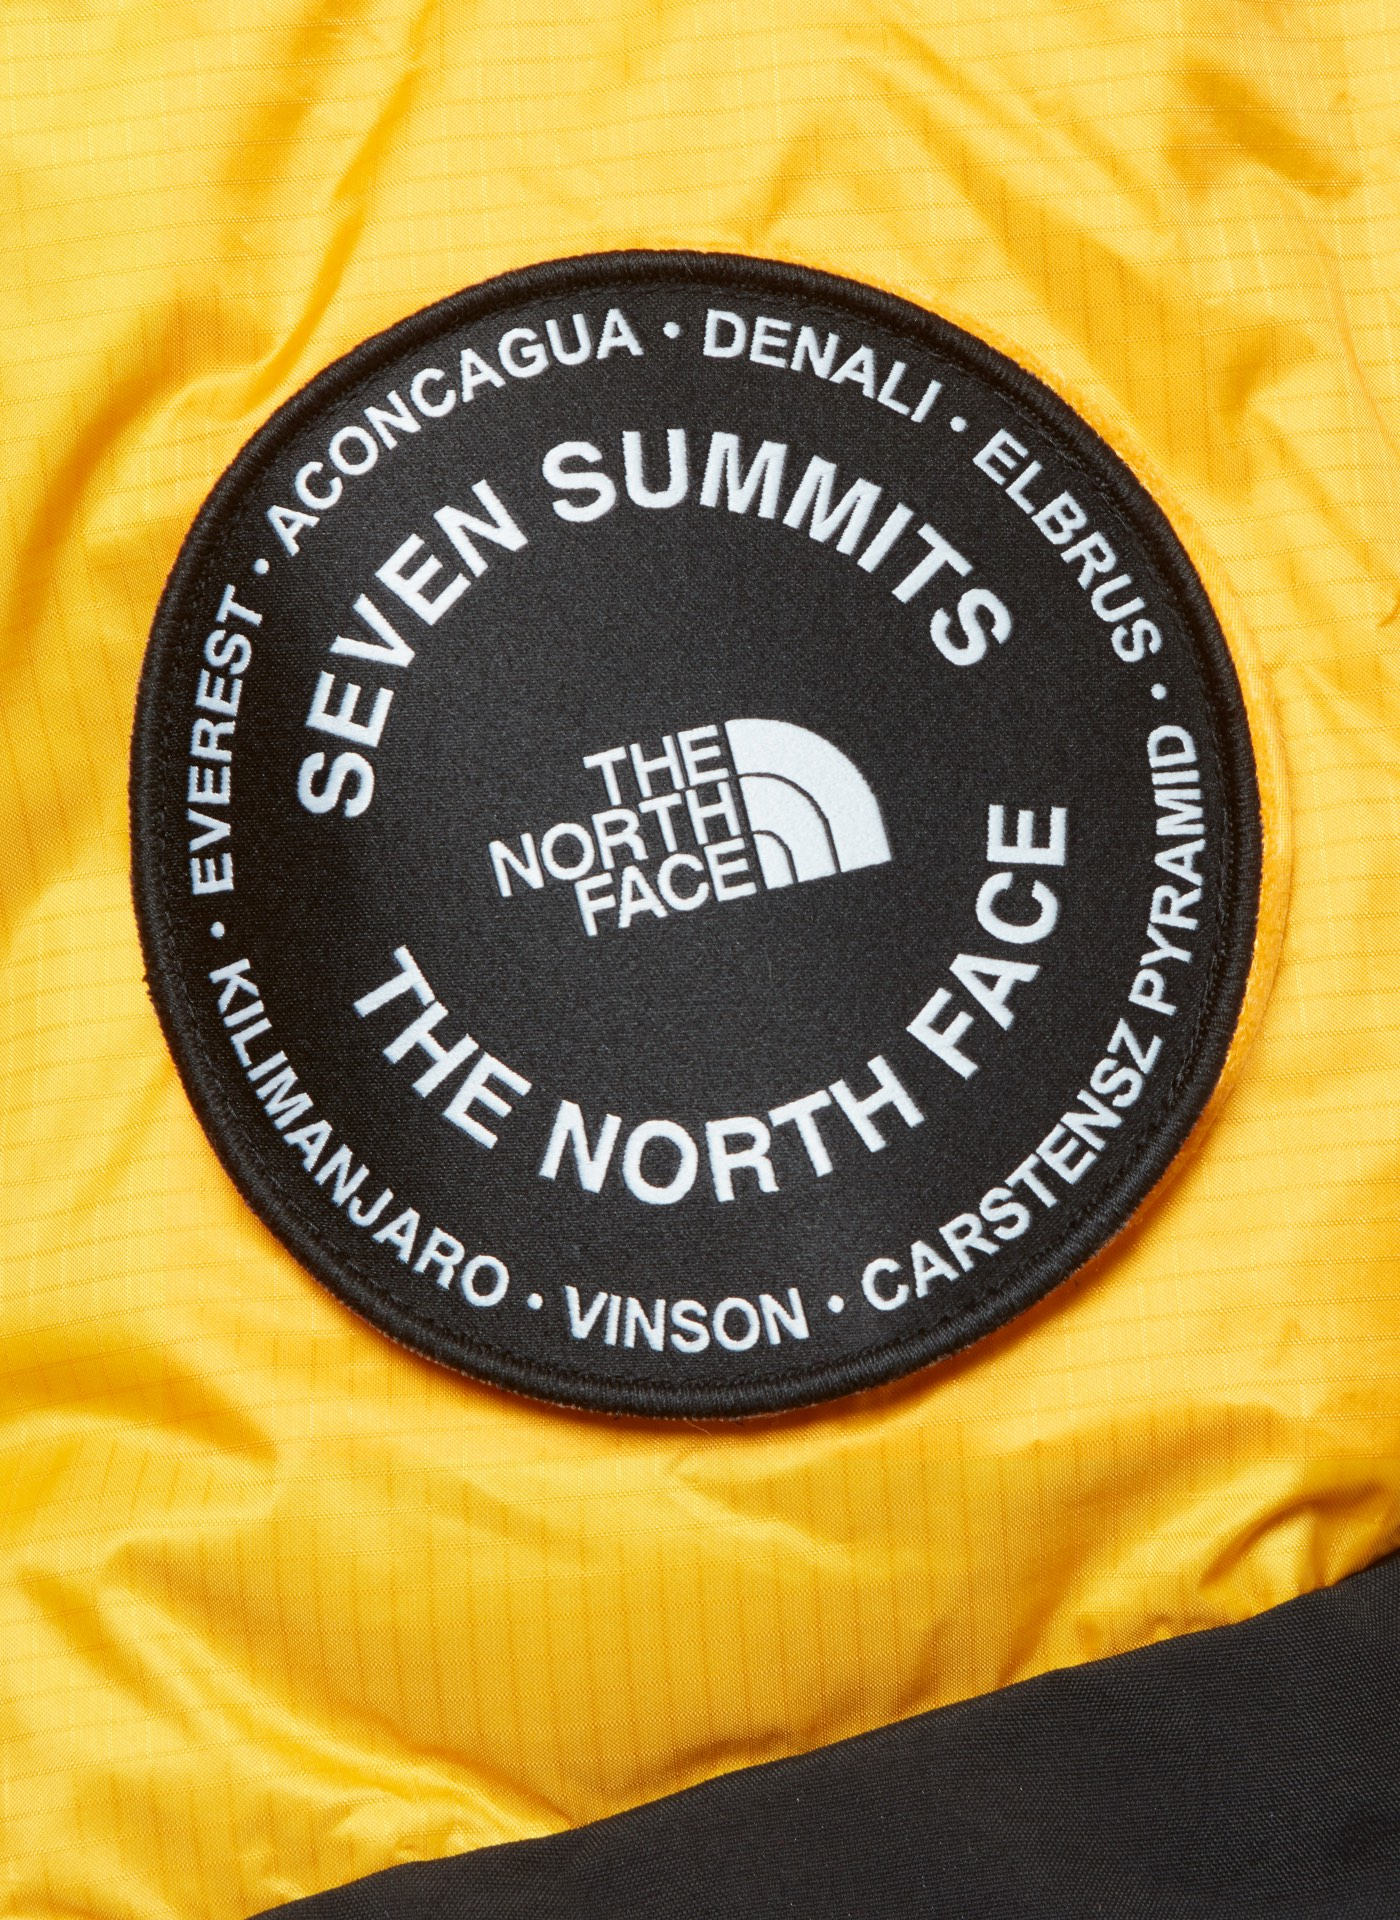 the north face logo on a yellow jacket